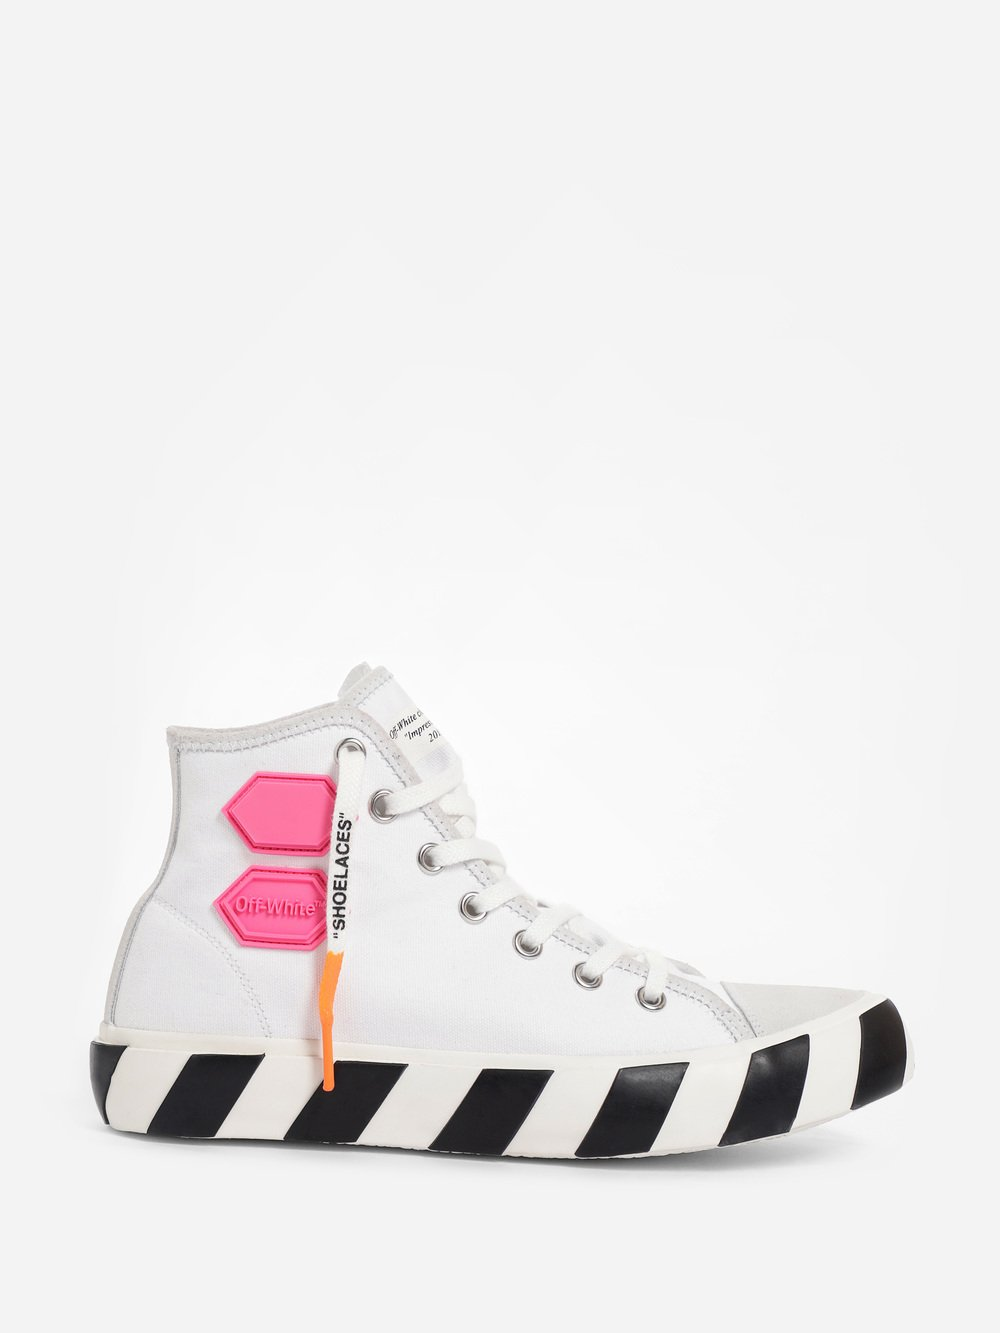 Off-White Canvases OFF-WHITE C/O VIRGIL ABLOH SNEAKERS